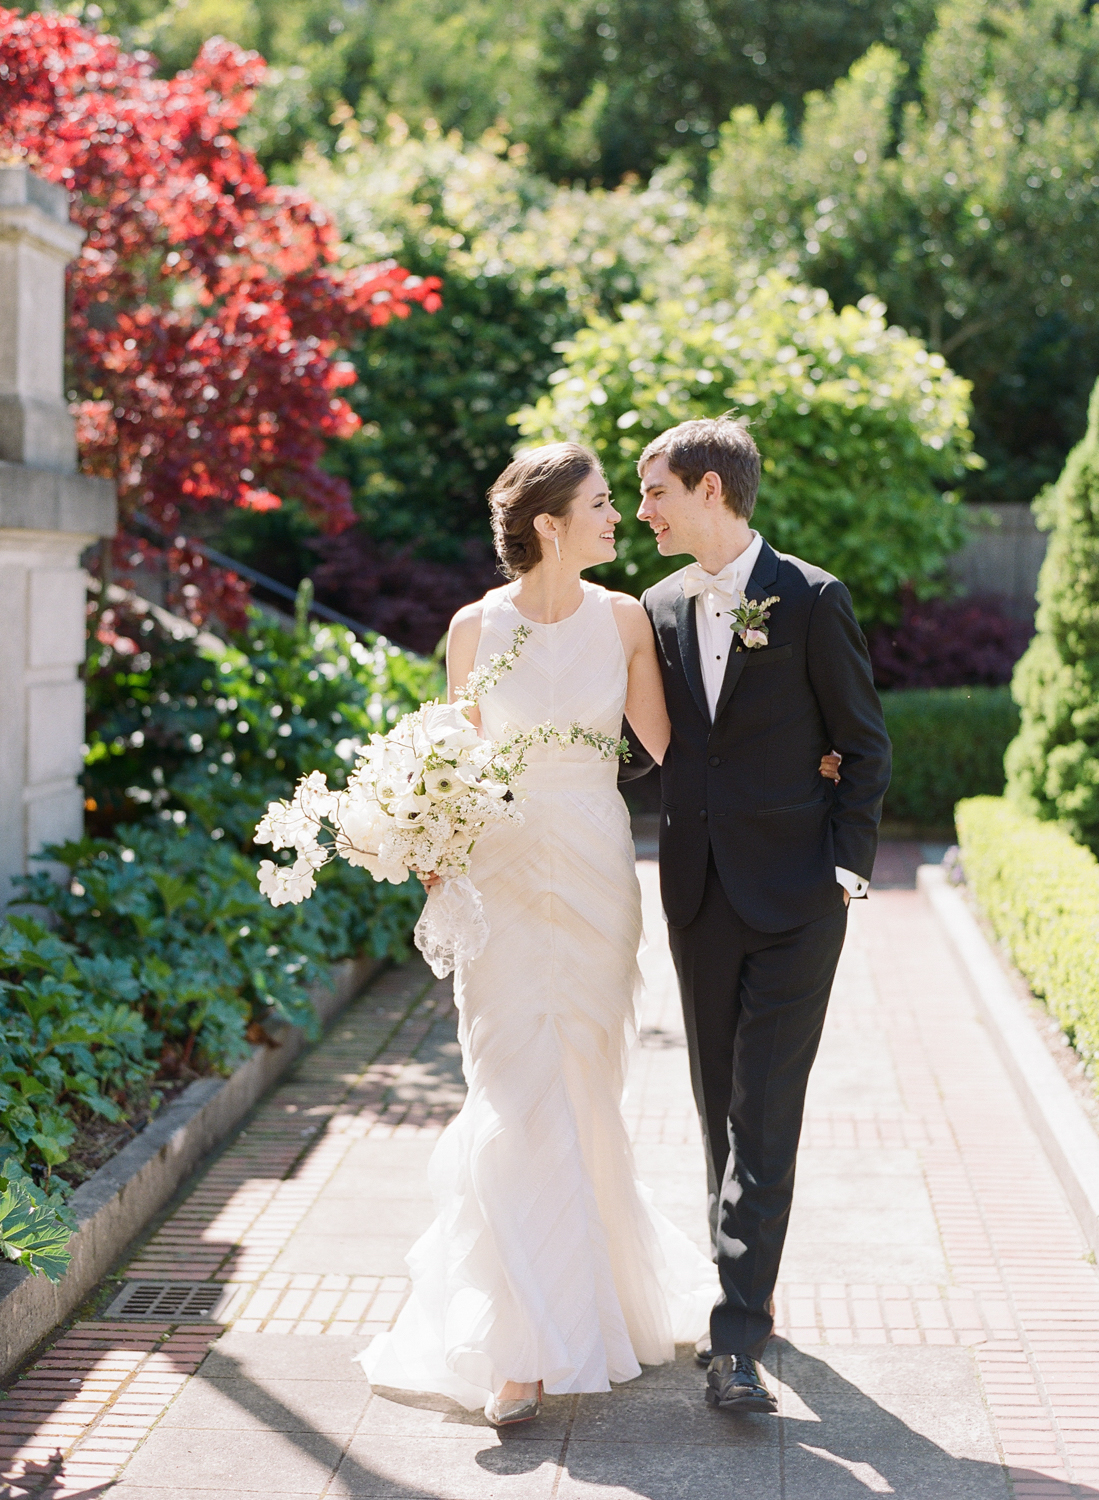 The bride and groom take a stroll together before their wedding at San Francisco City Hall; Sylvie Gil Photography